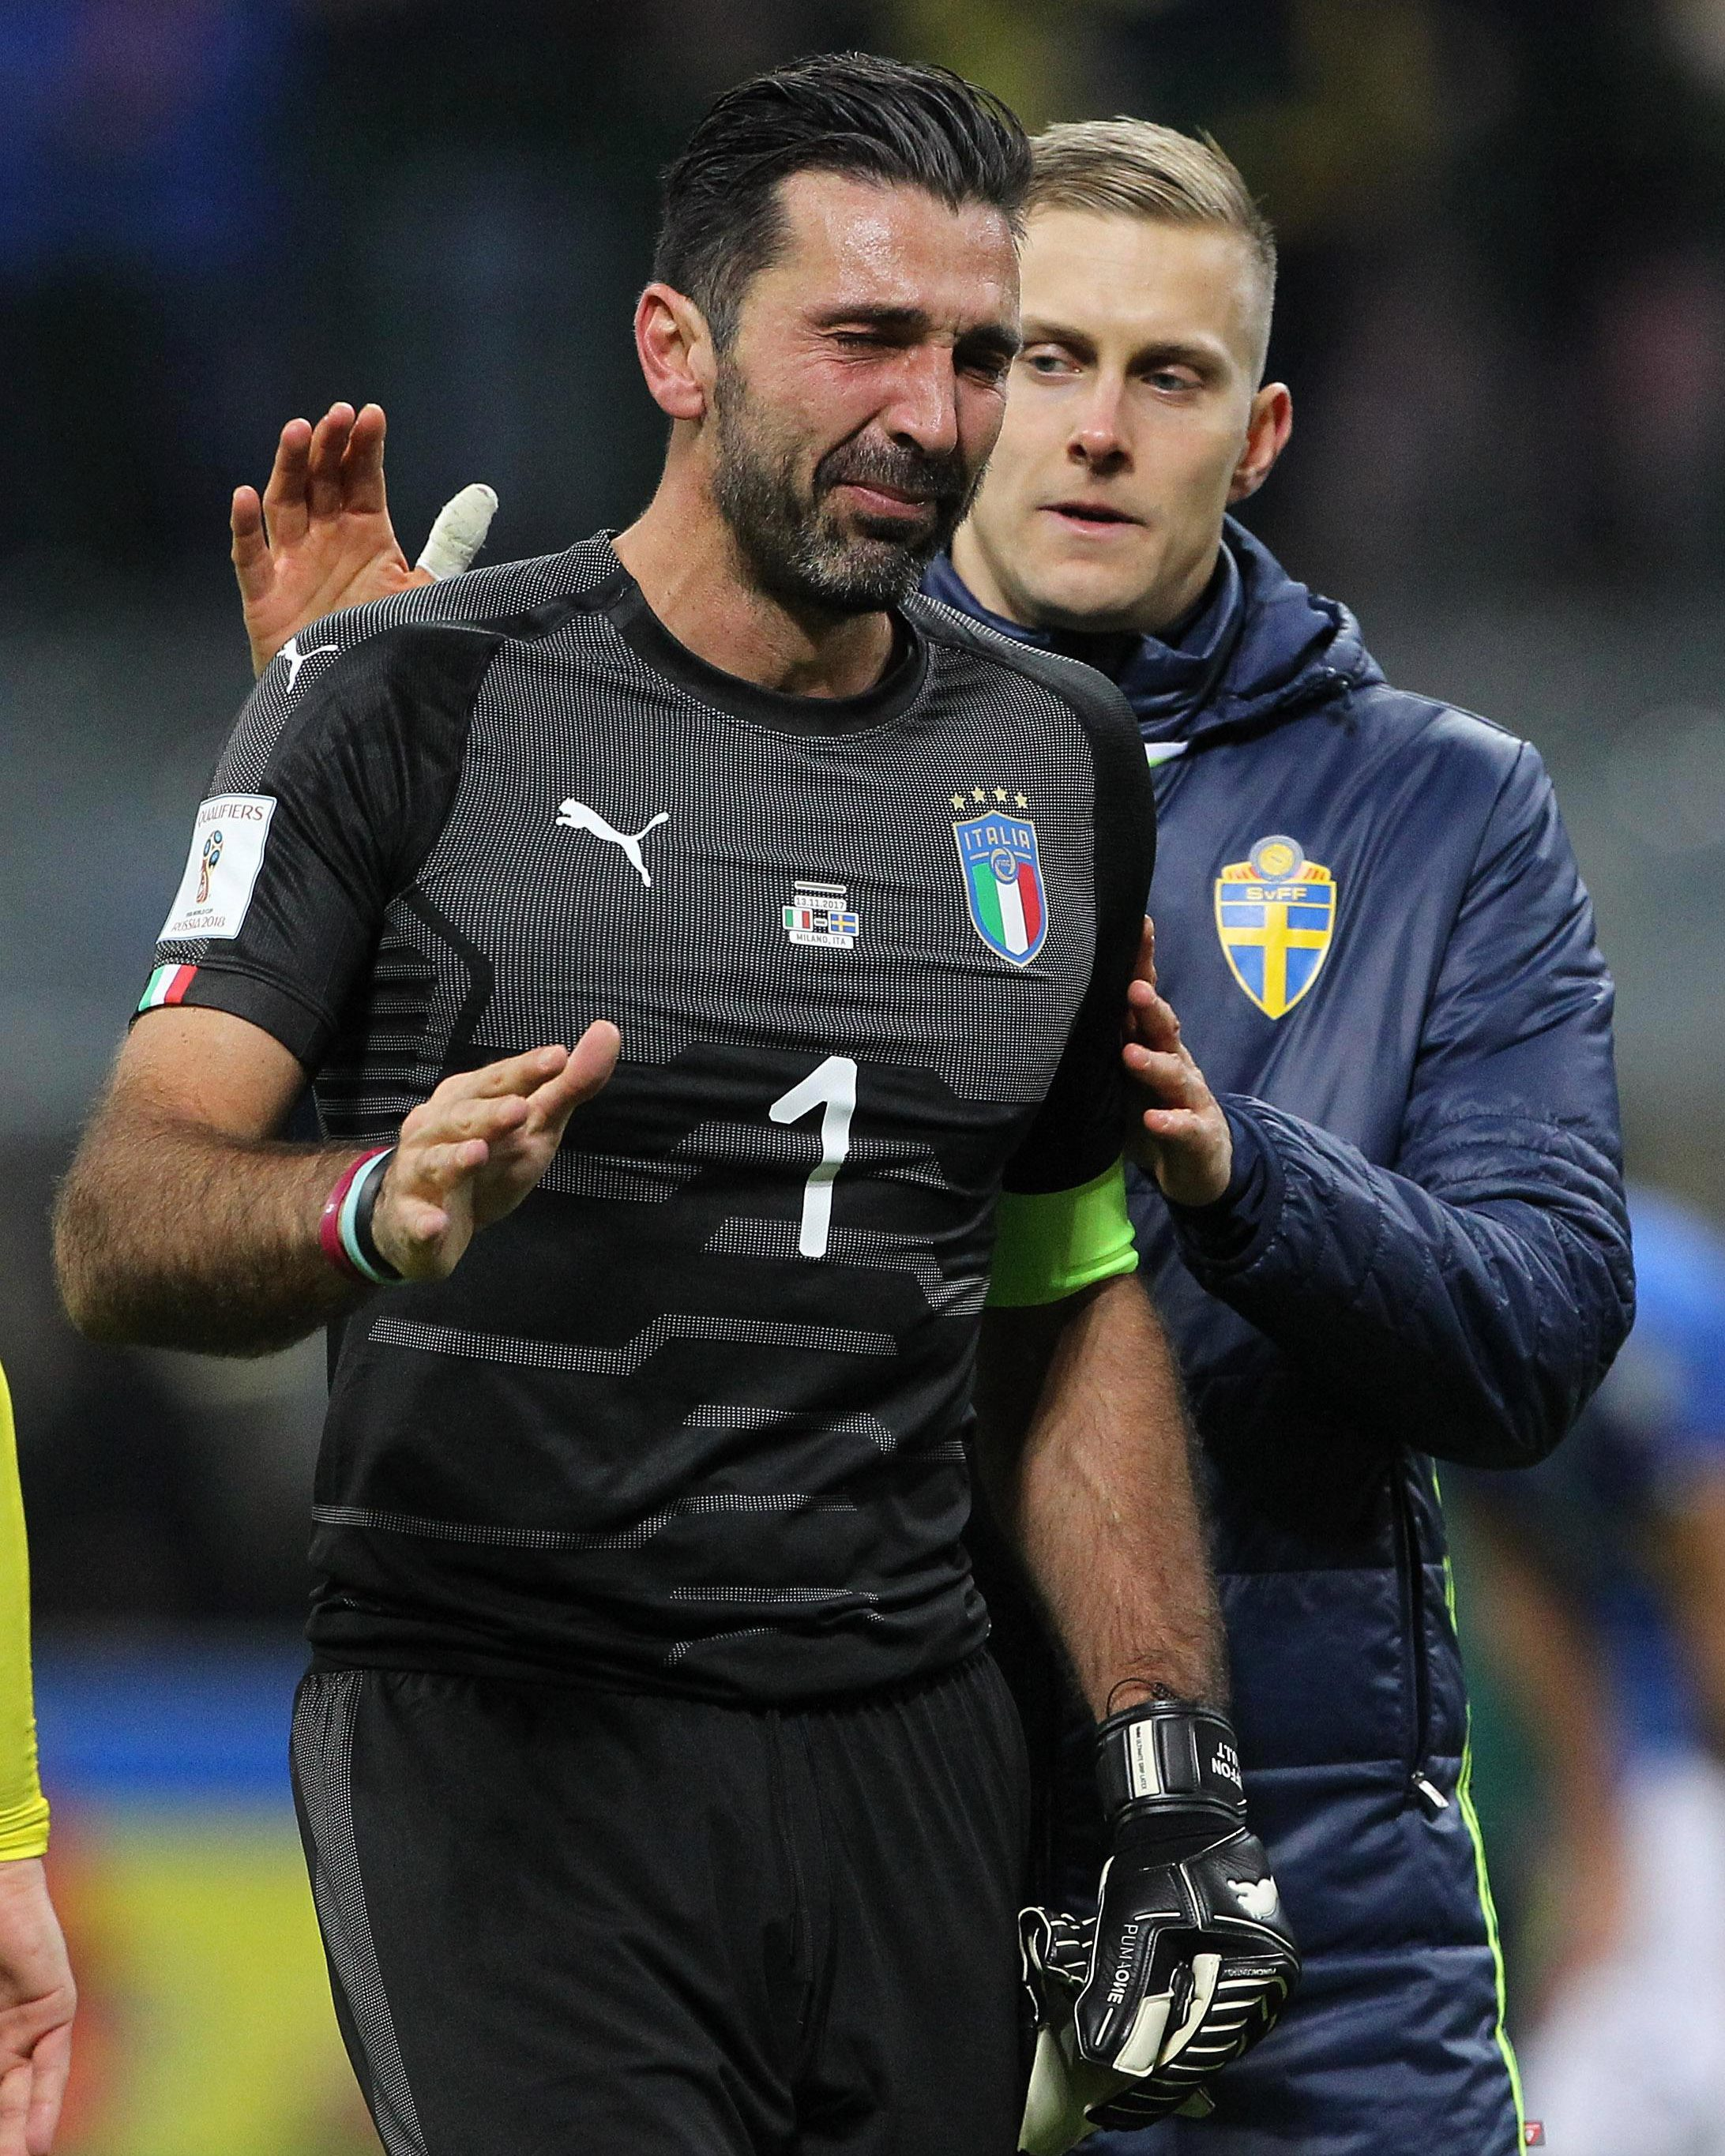 Gianluigi Buffon couldn't hide his pain as Italy missed out on the World Cup